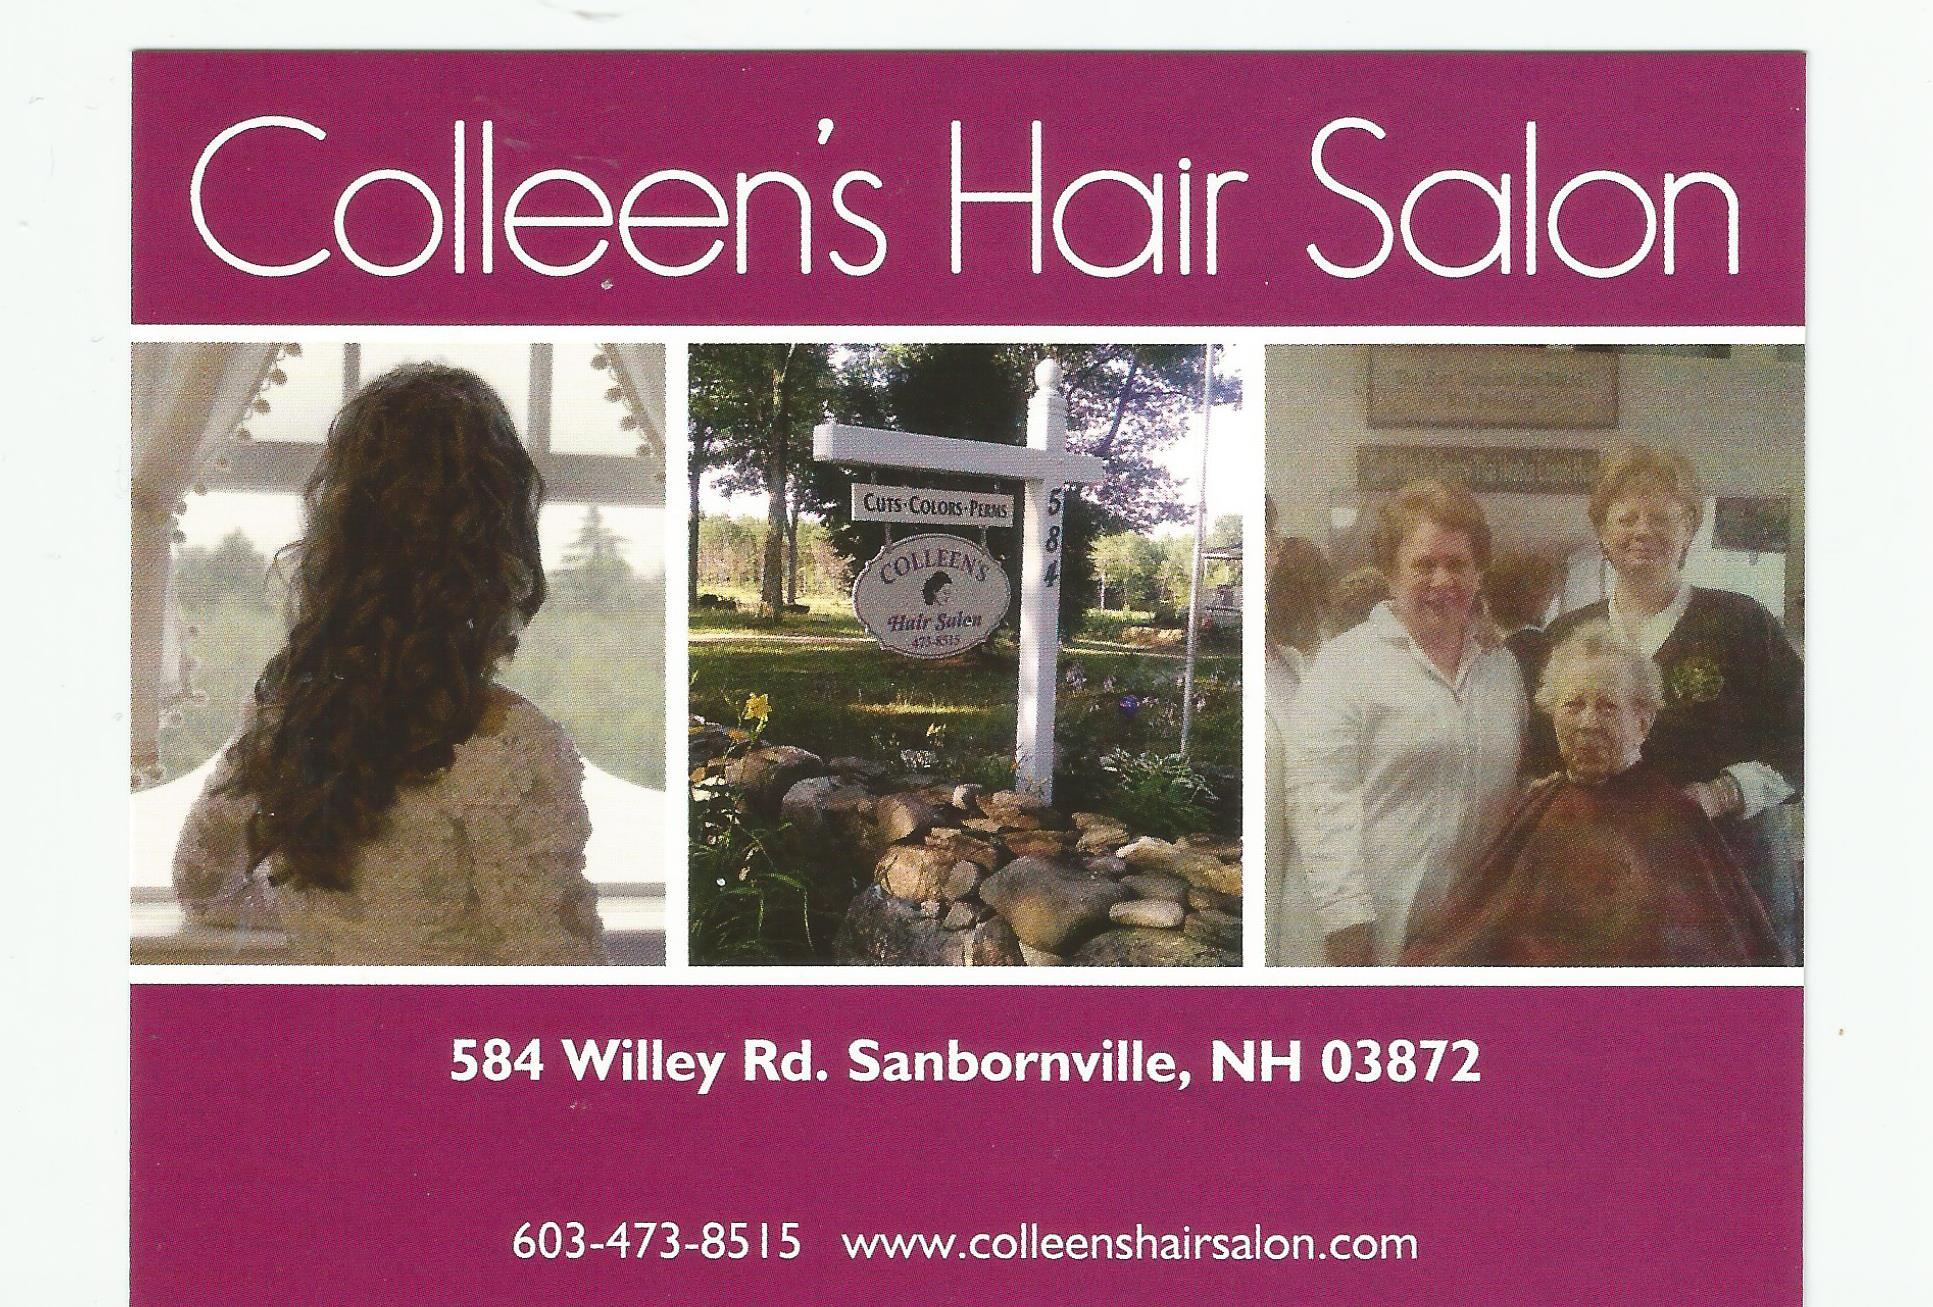 Colleen's Hair Salon & Author Lords Hill Memoir dba Colleen Bruce